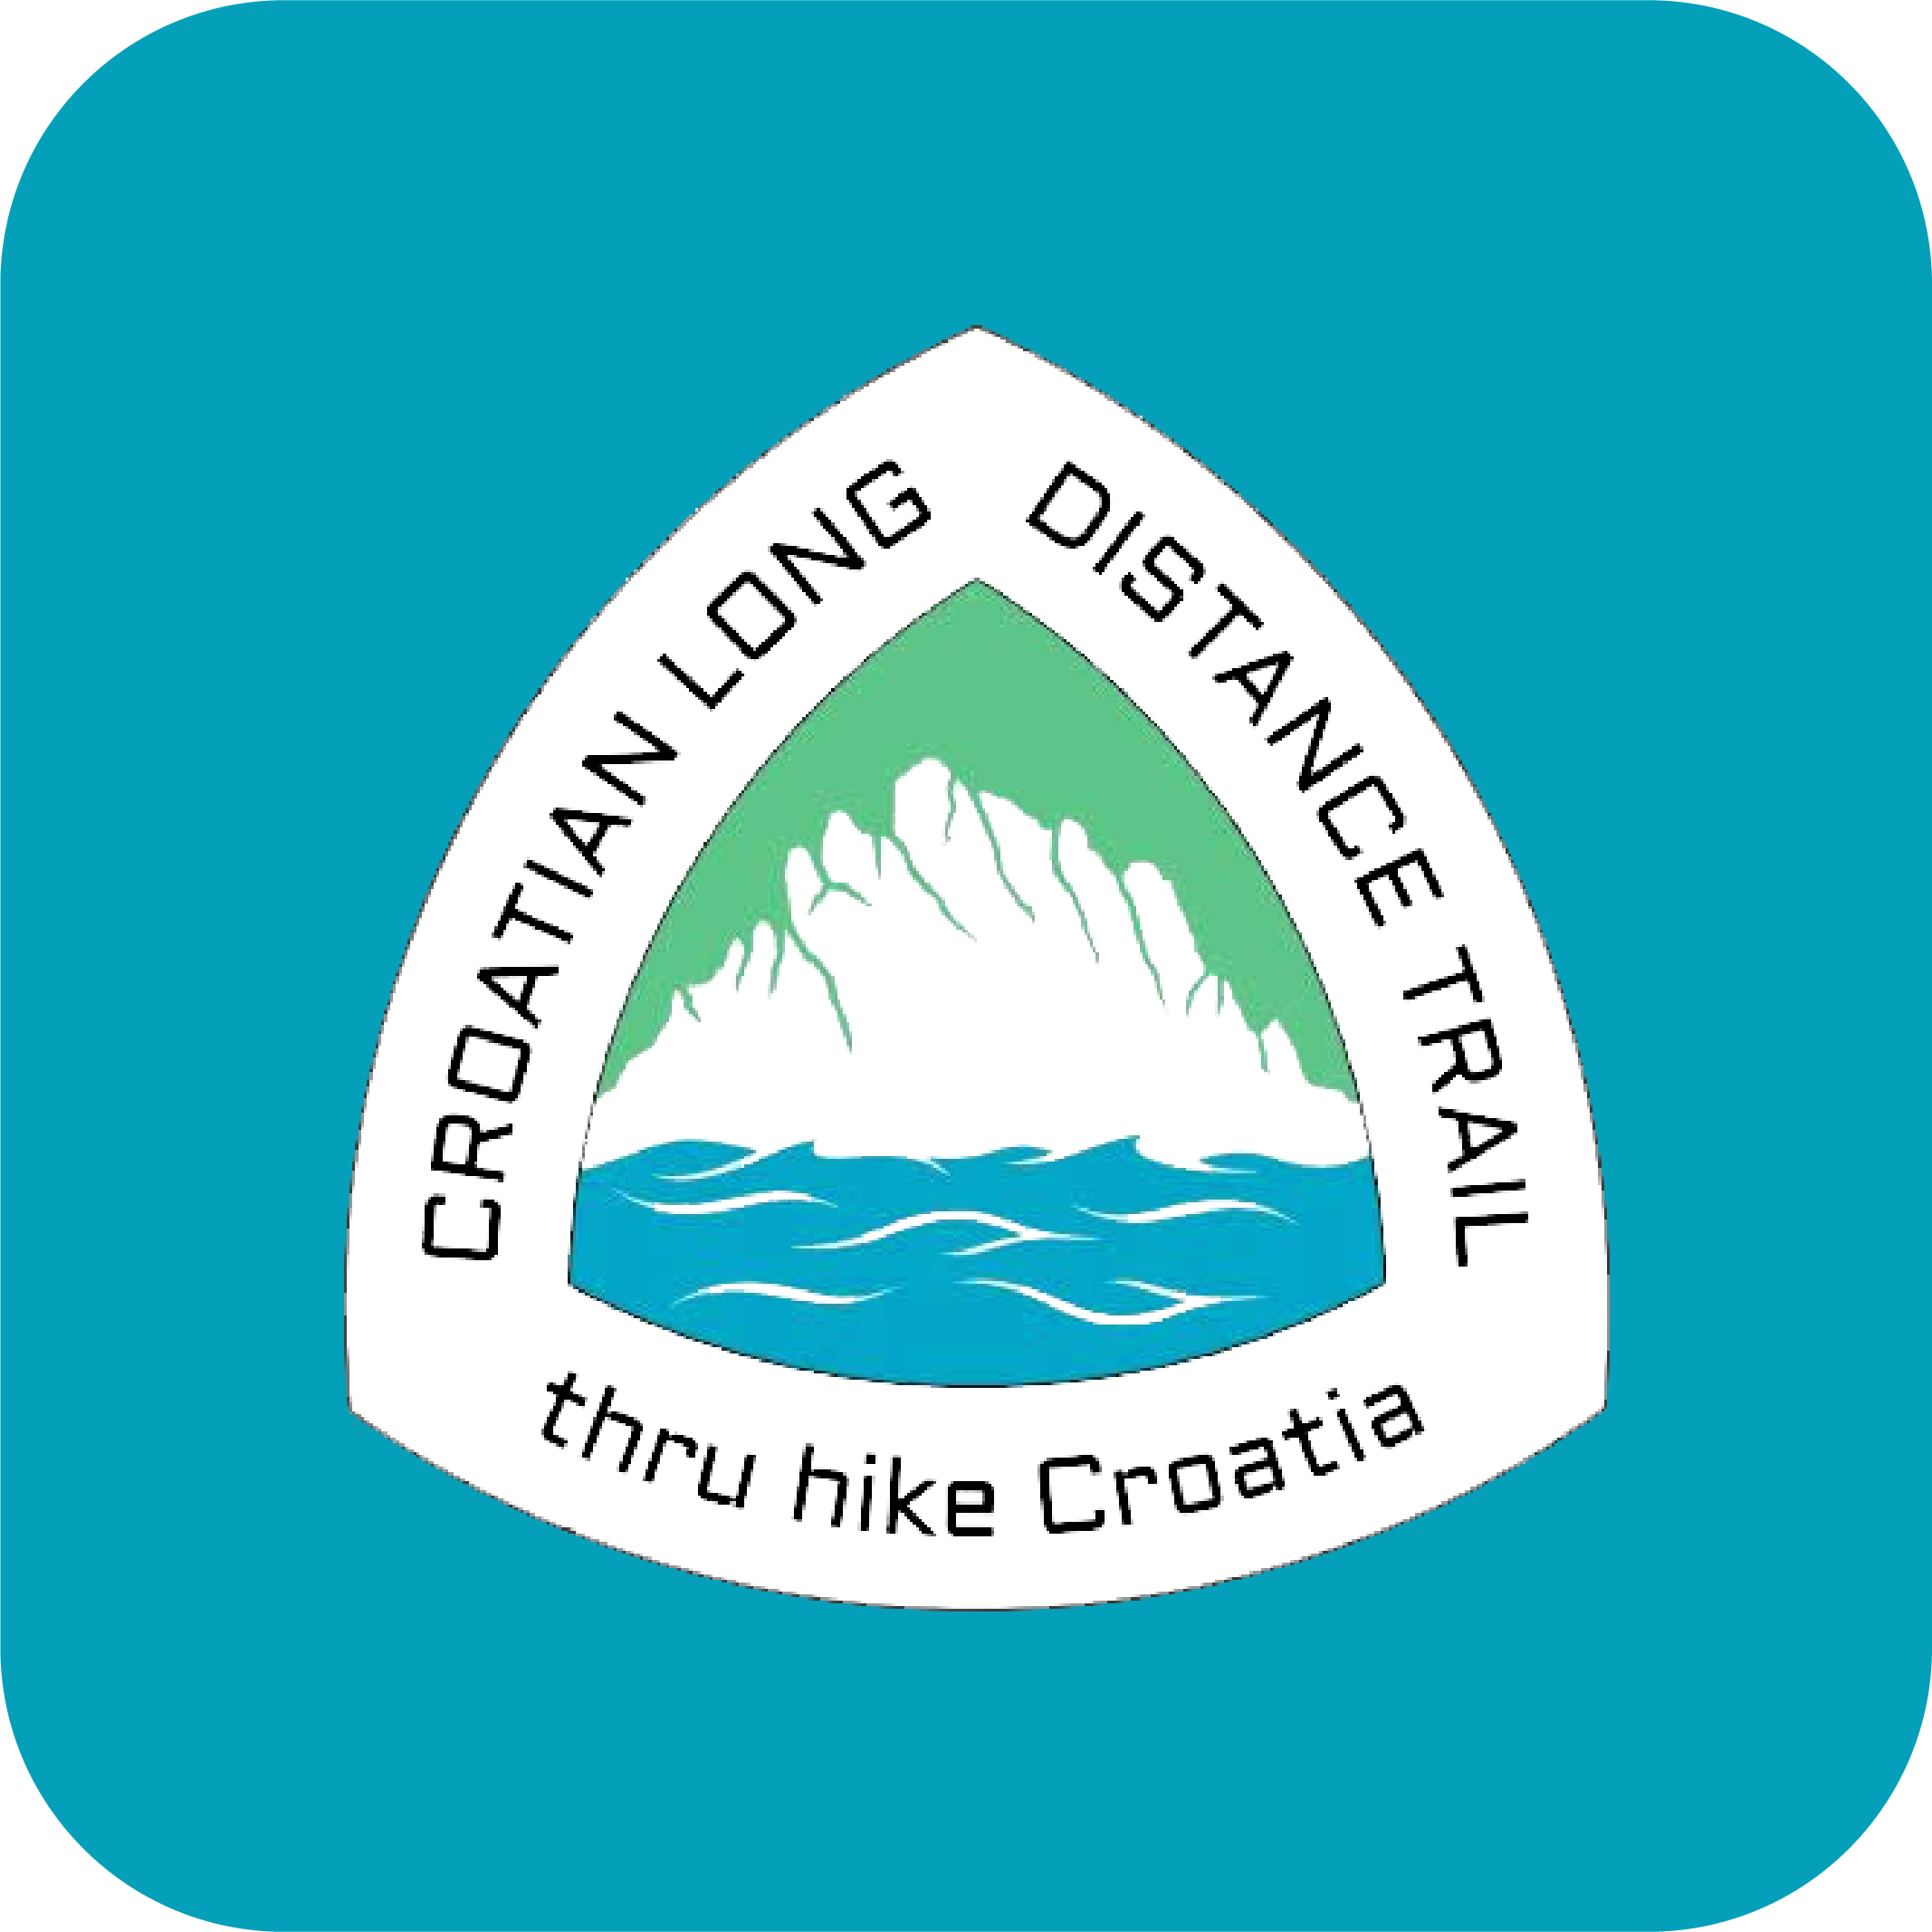 App icon for the Croatian Long Distance Trail.